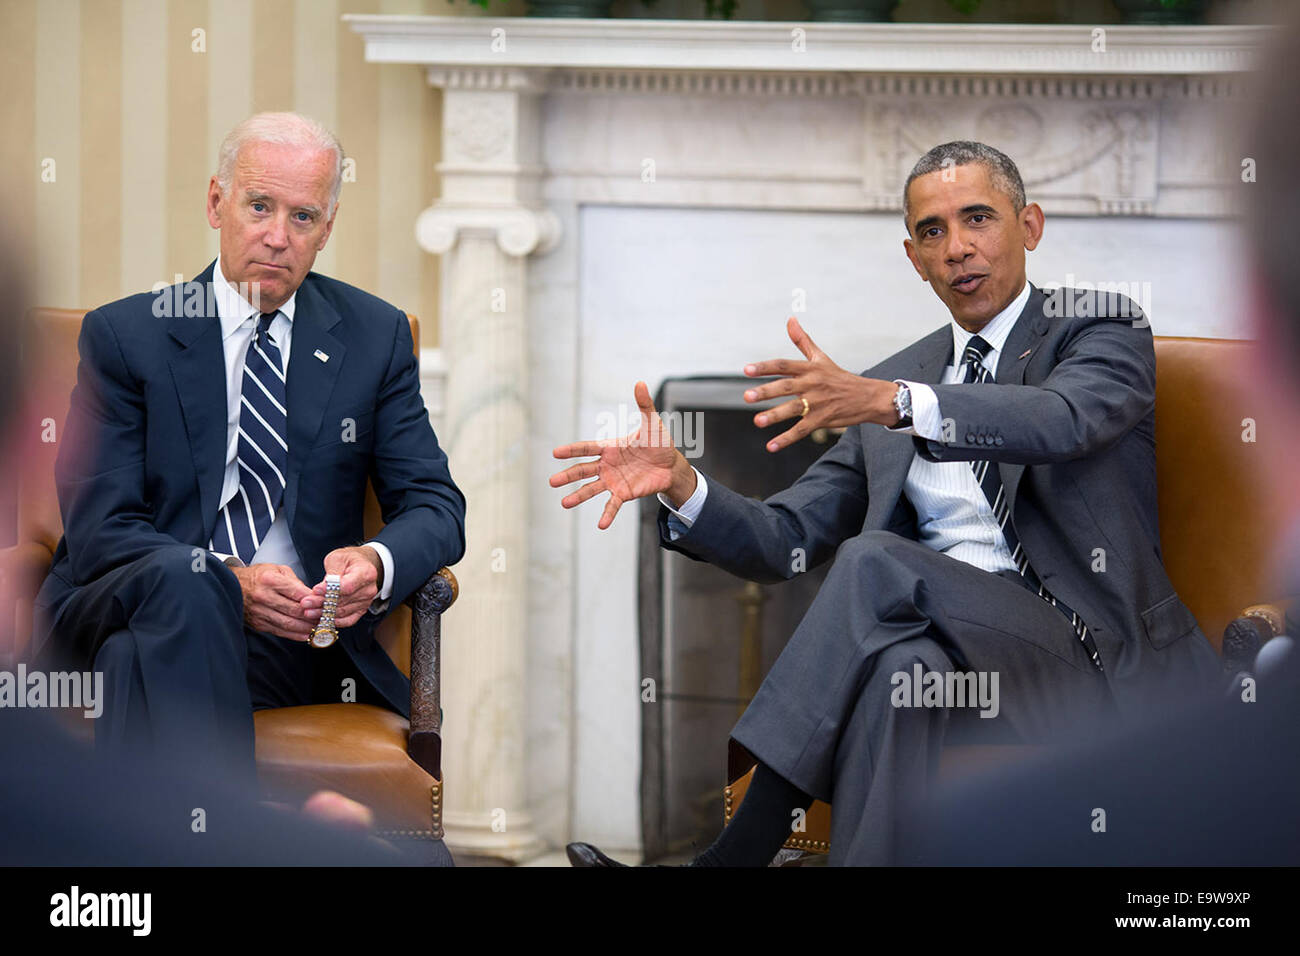 President Barack Obama gestures during a meeting with Vice President Joe Biden in the Oval Office, Aug. 27, 2014. - Stock Image